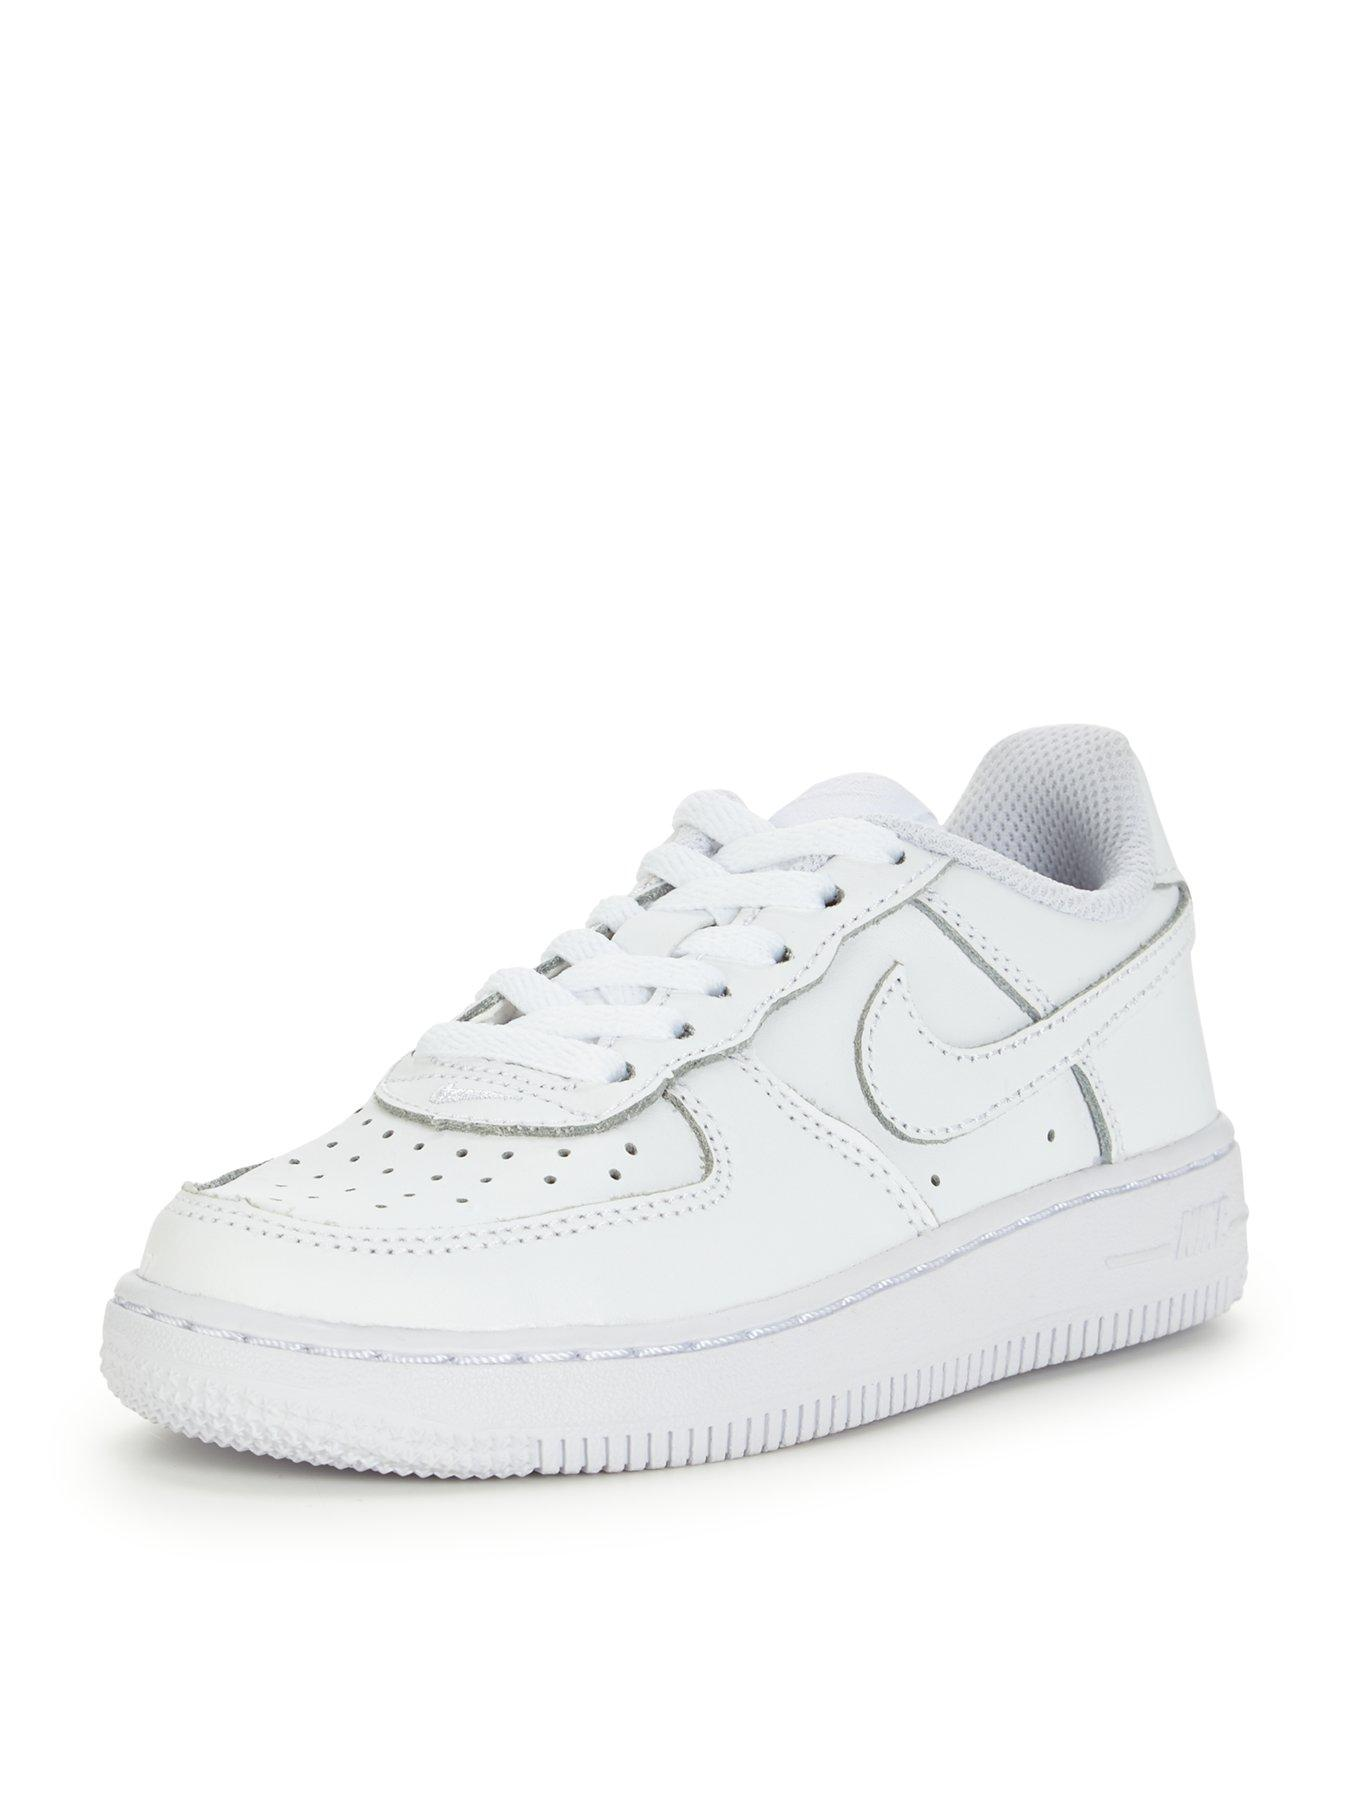 Nike Air Force 1 Low Junior Trainers Black